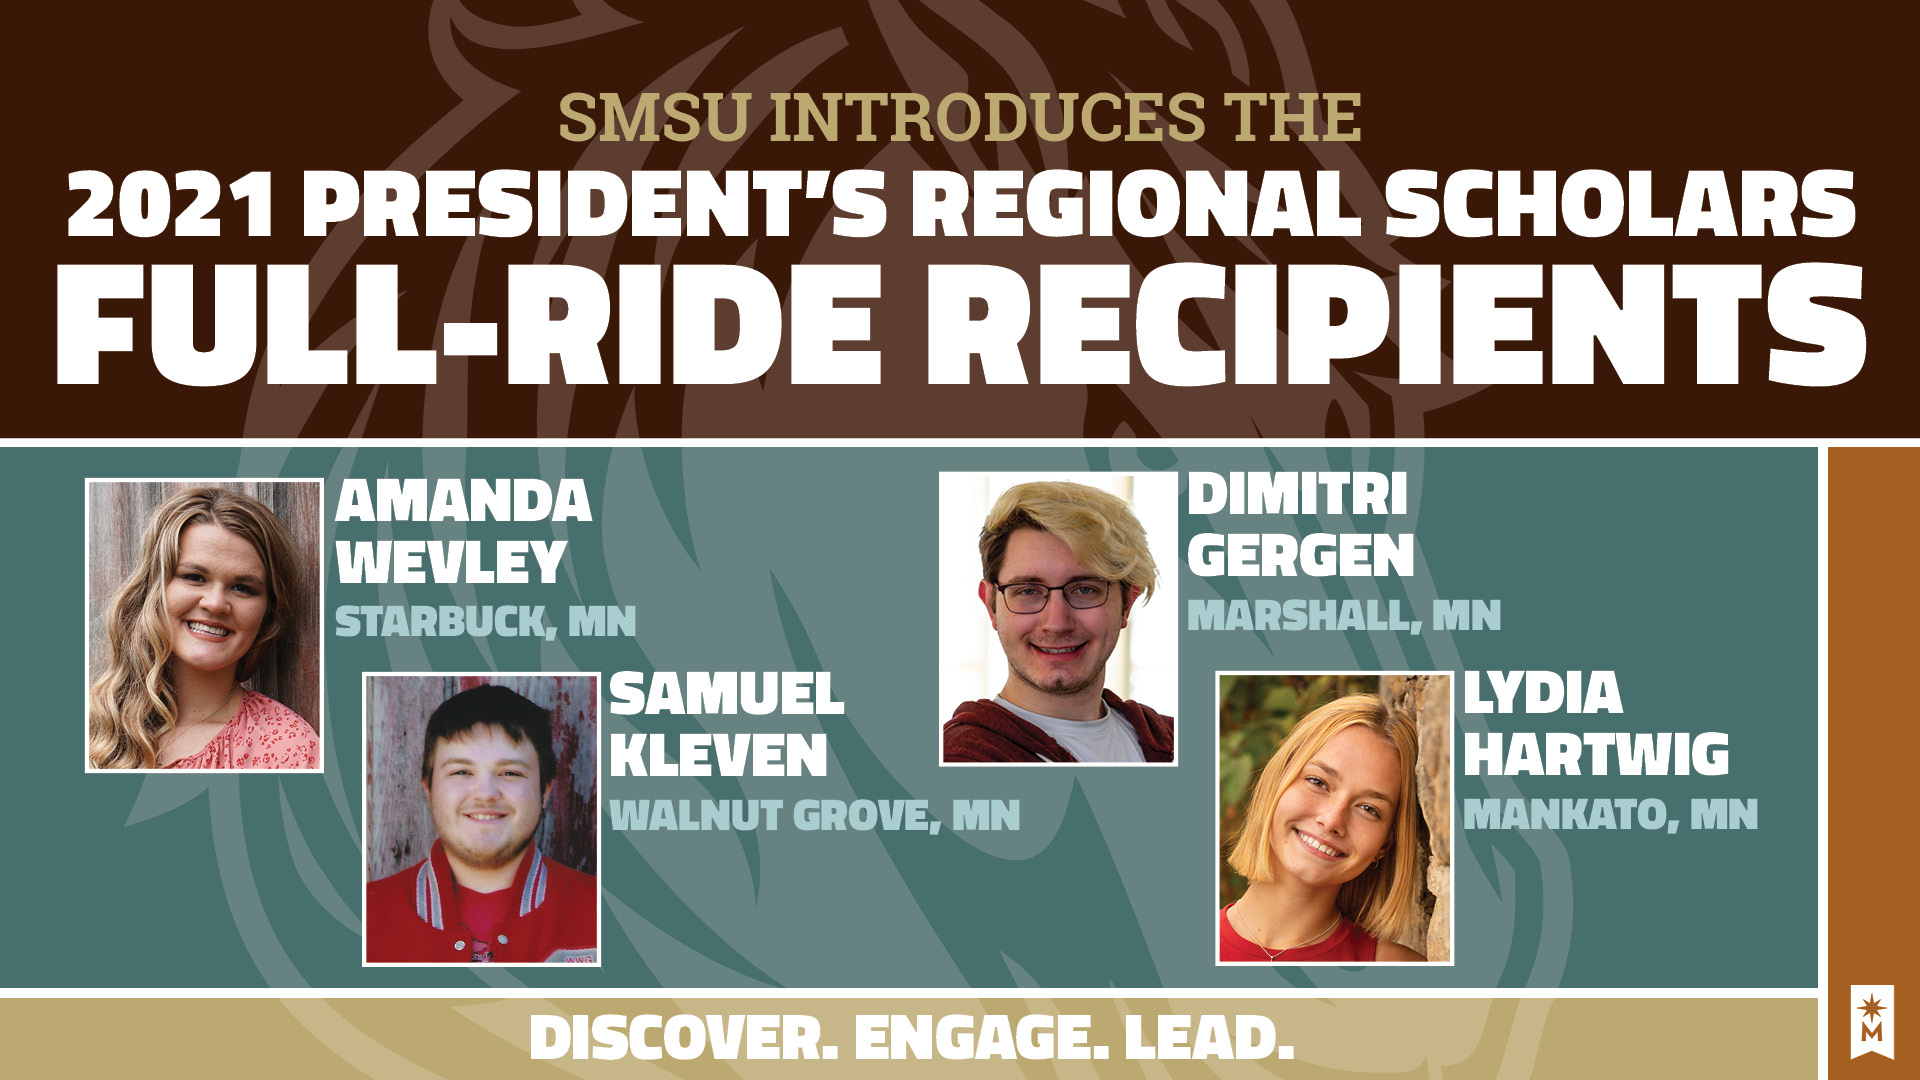 Surprising the 2021 SMSU President's Regional Scholar Full-Ride Recipients!